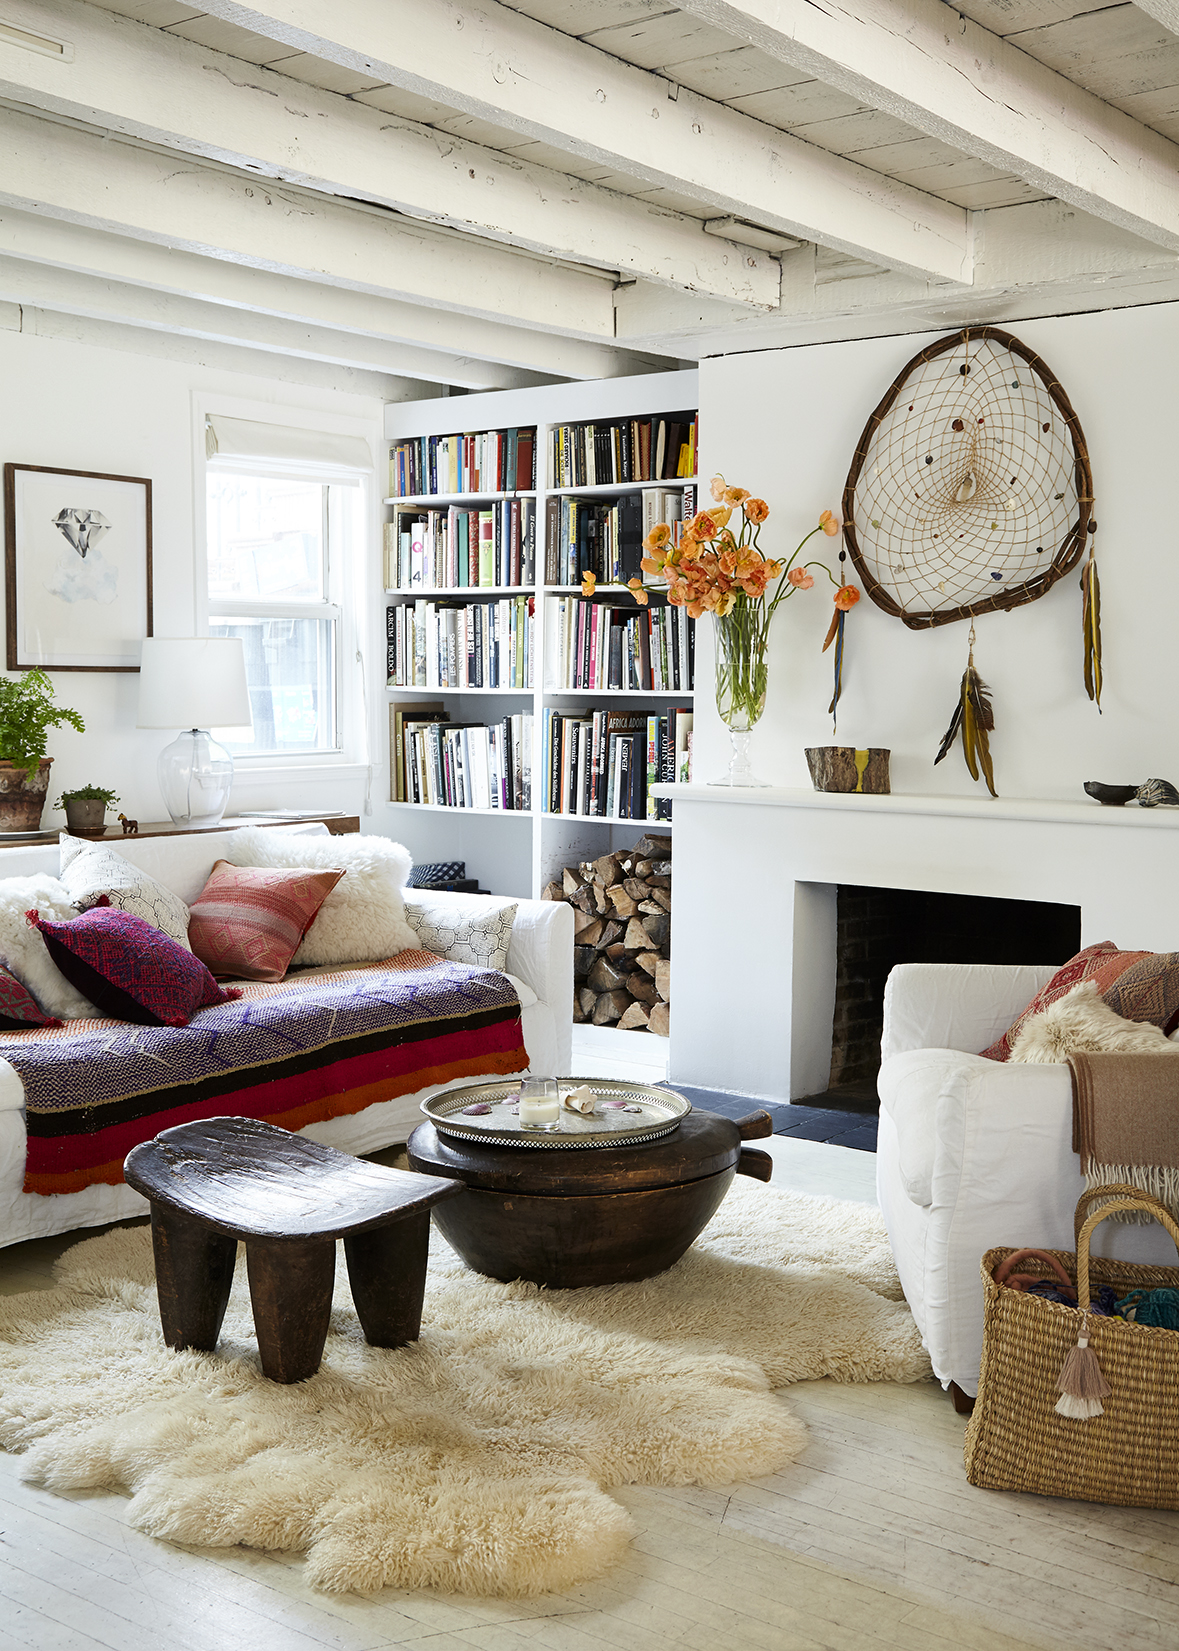 Intiearth-Jenni-Li-Brooklyn-house-Dana-Gallagher-photo-Remodelista-3